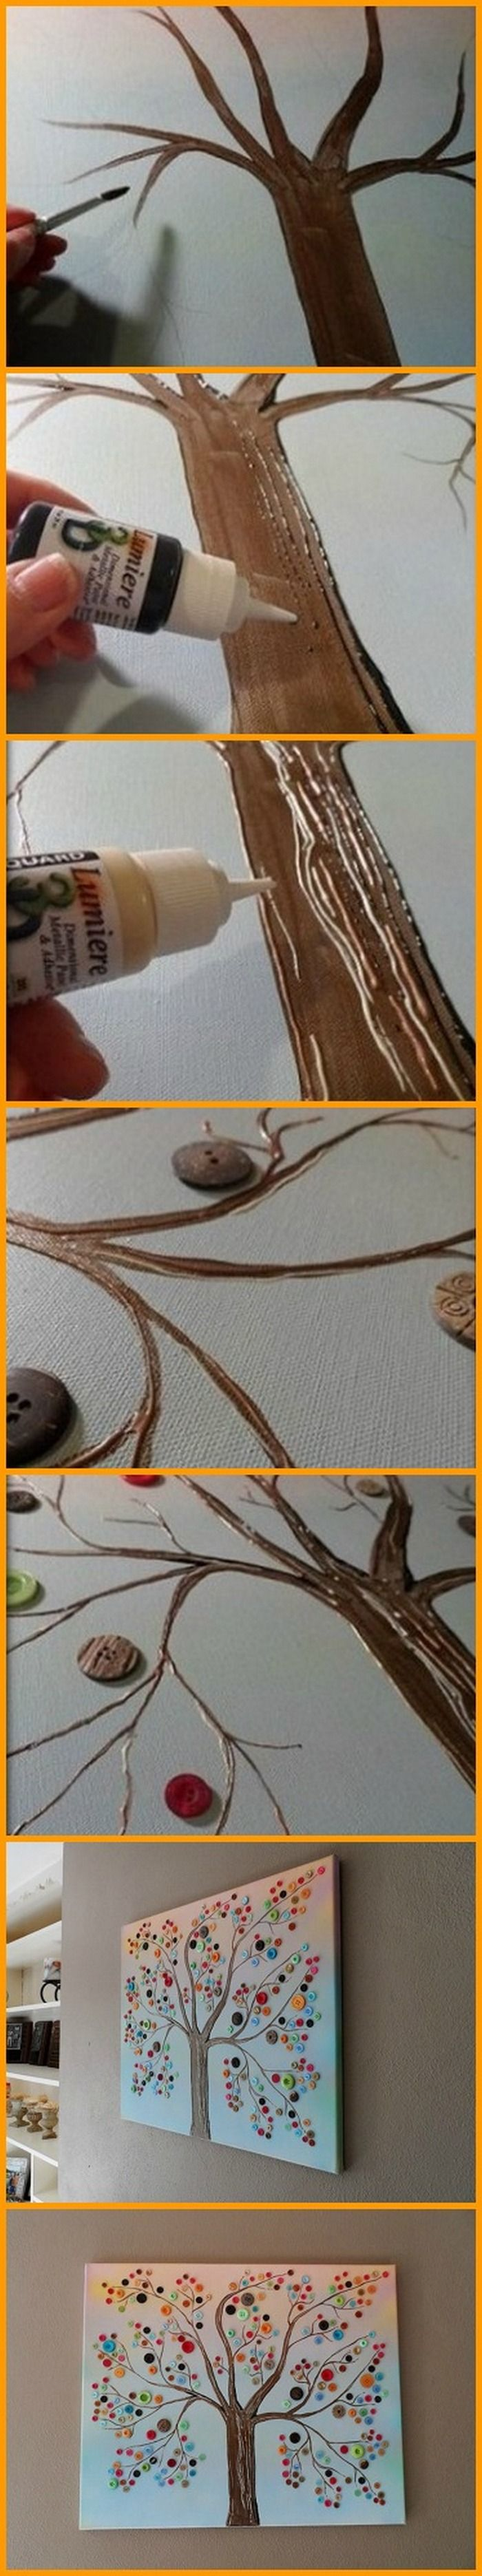 Decorate your home with this button tree on canvas! Why buy wall decor, when you can make it yourself :-) http://theownerbuildernetwork.co/q6ro